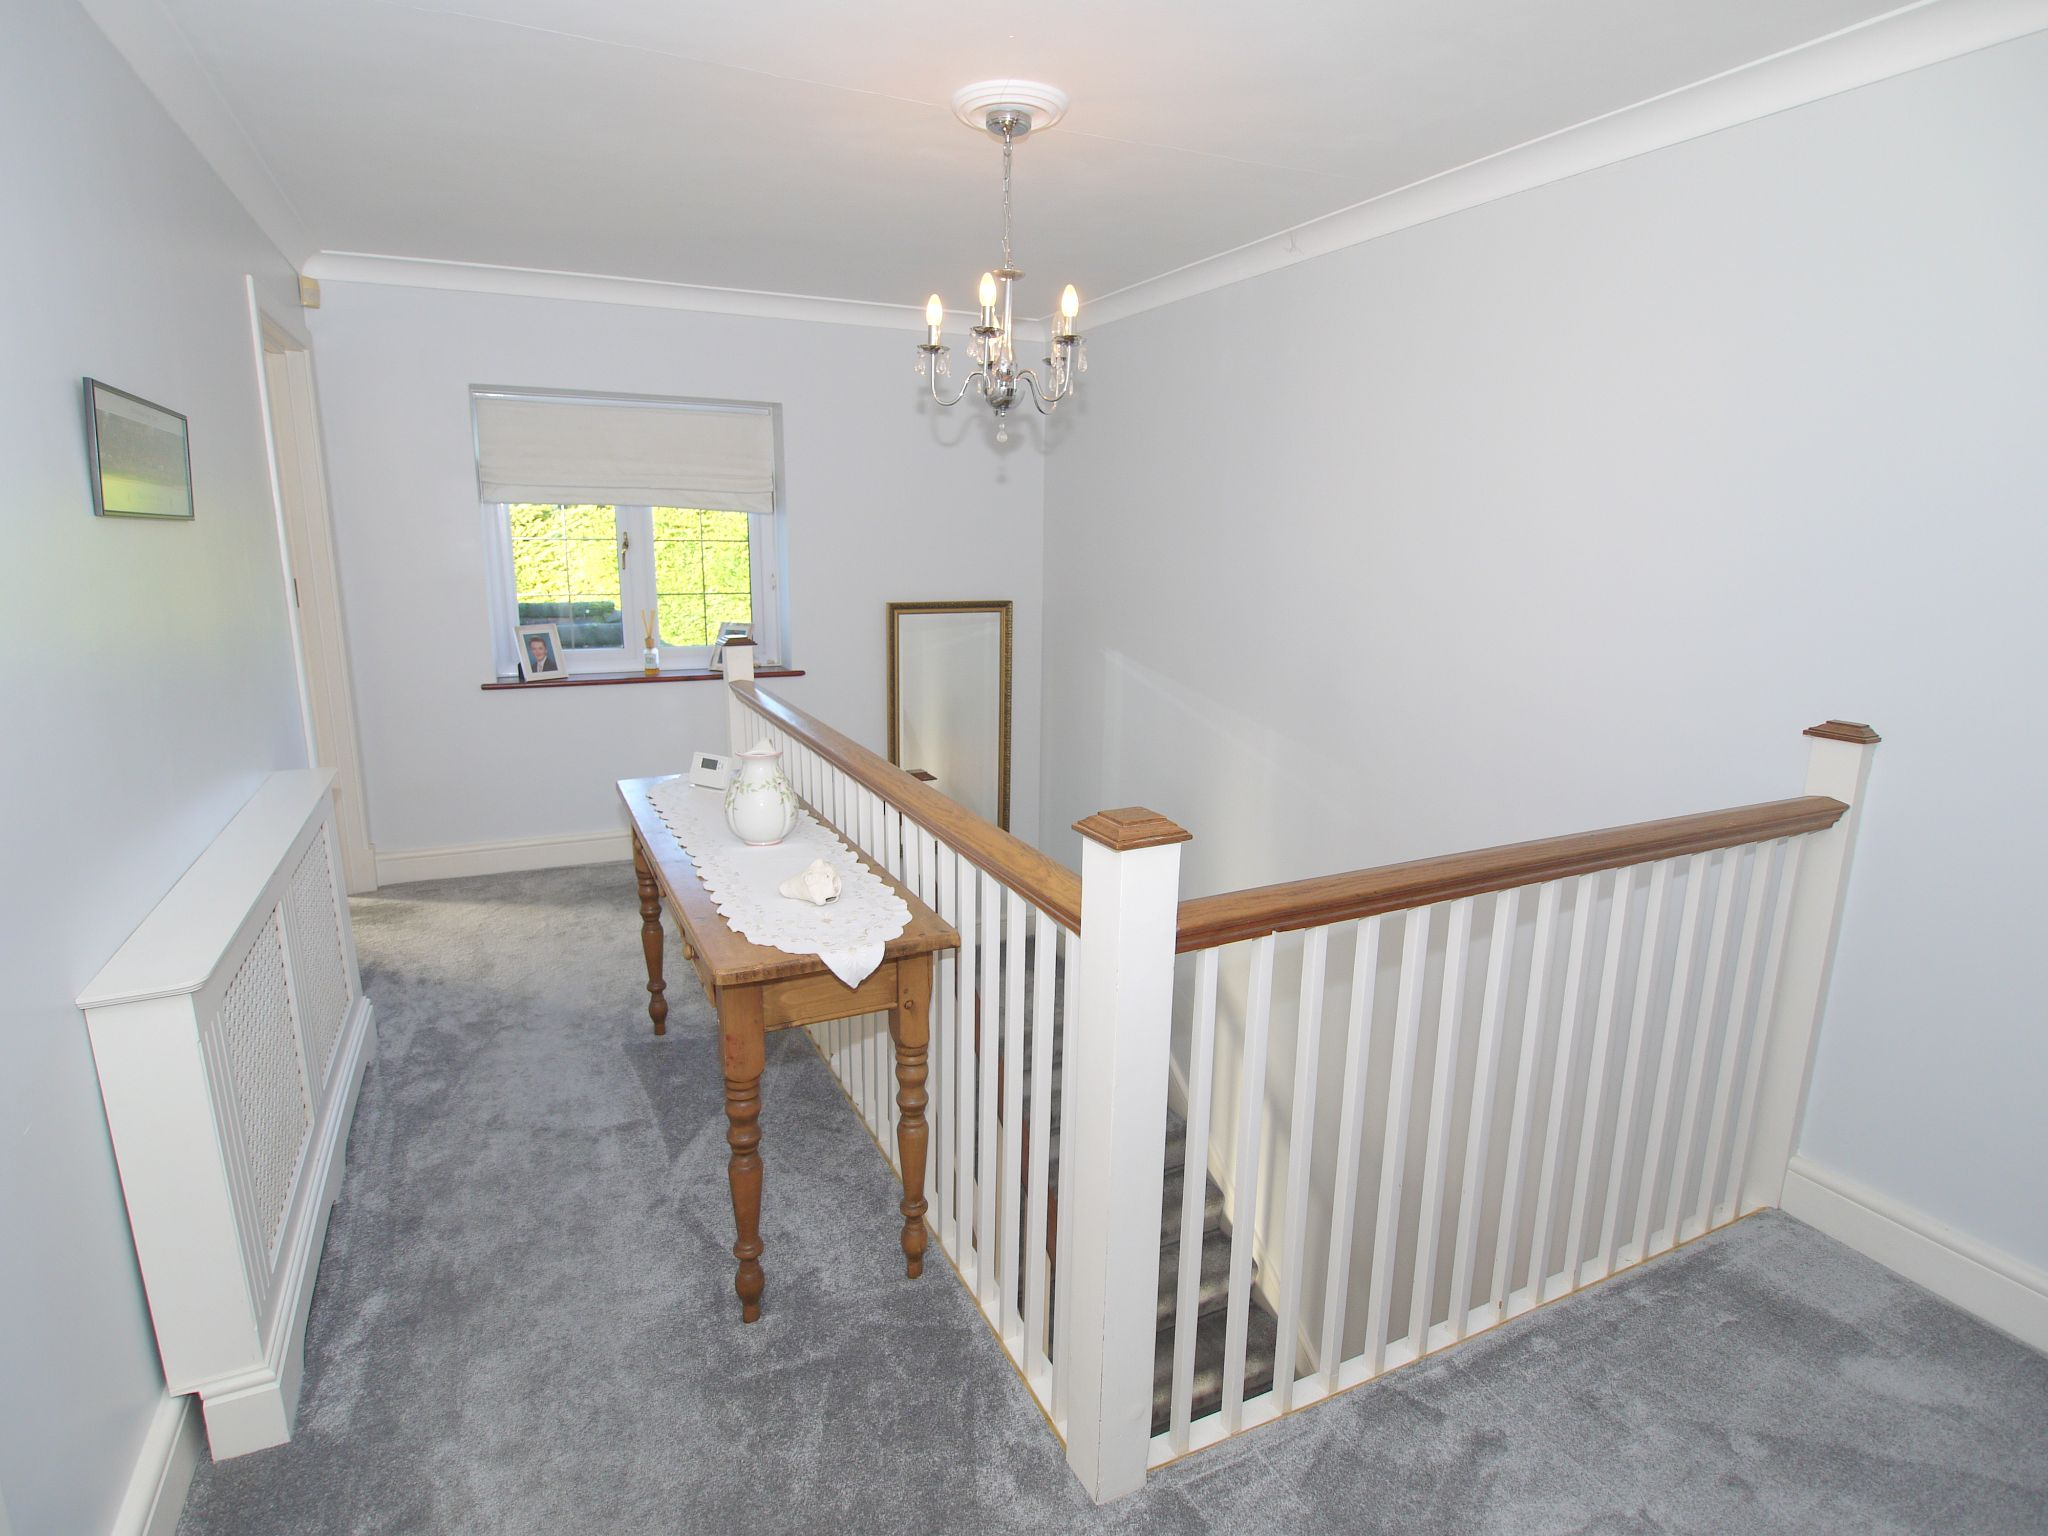 4 bedroom detached house For Sale in Farningham - Photograph 8